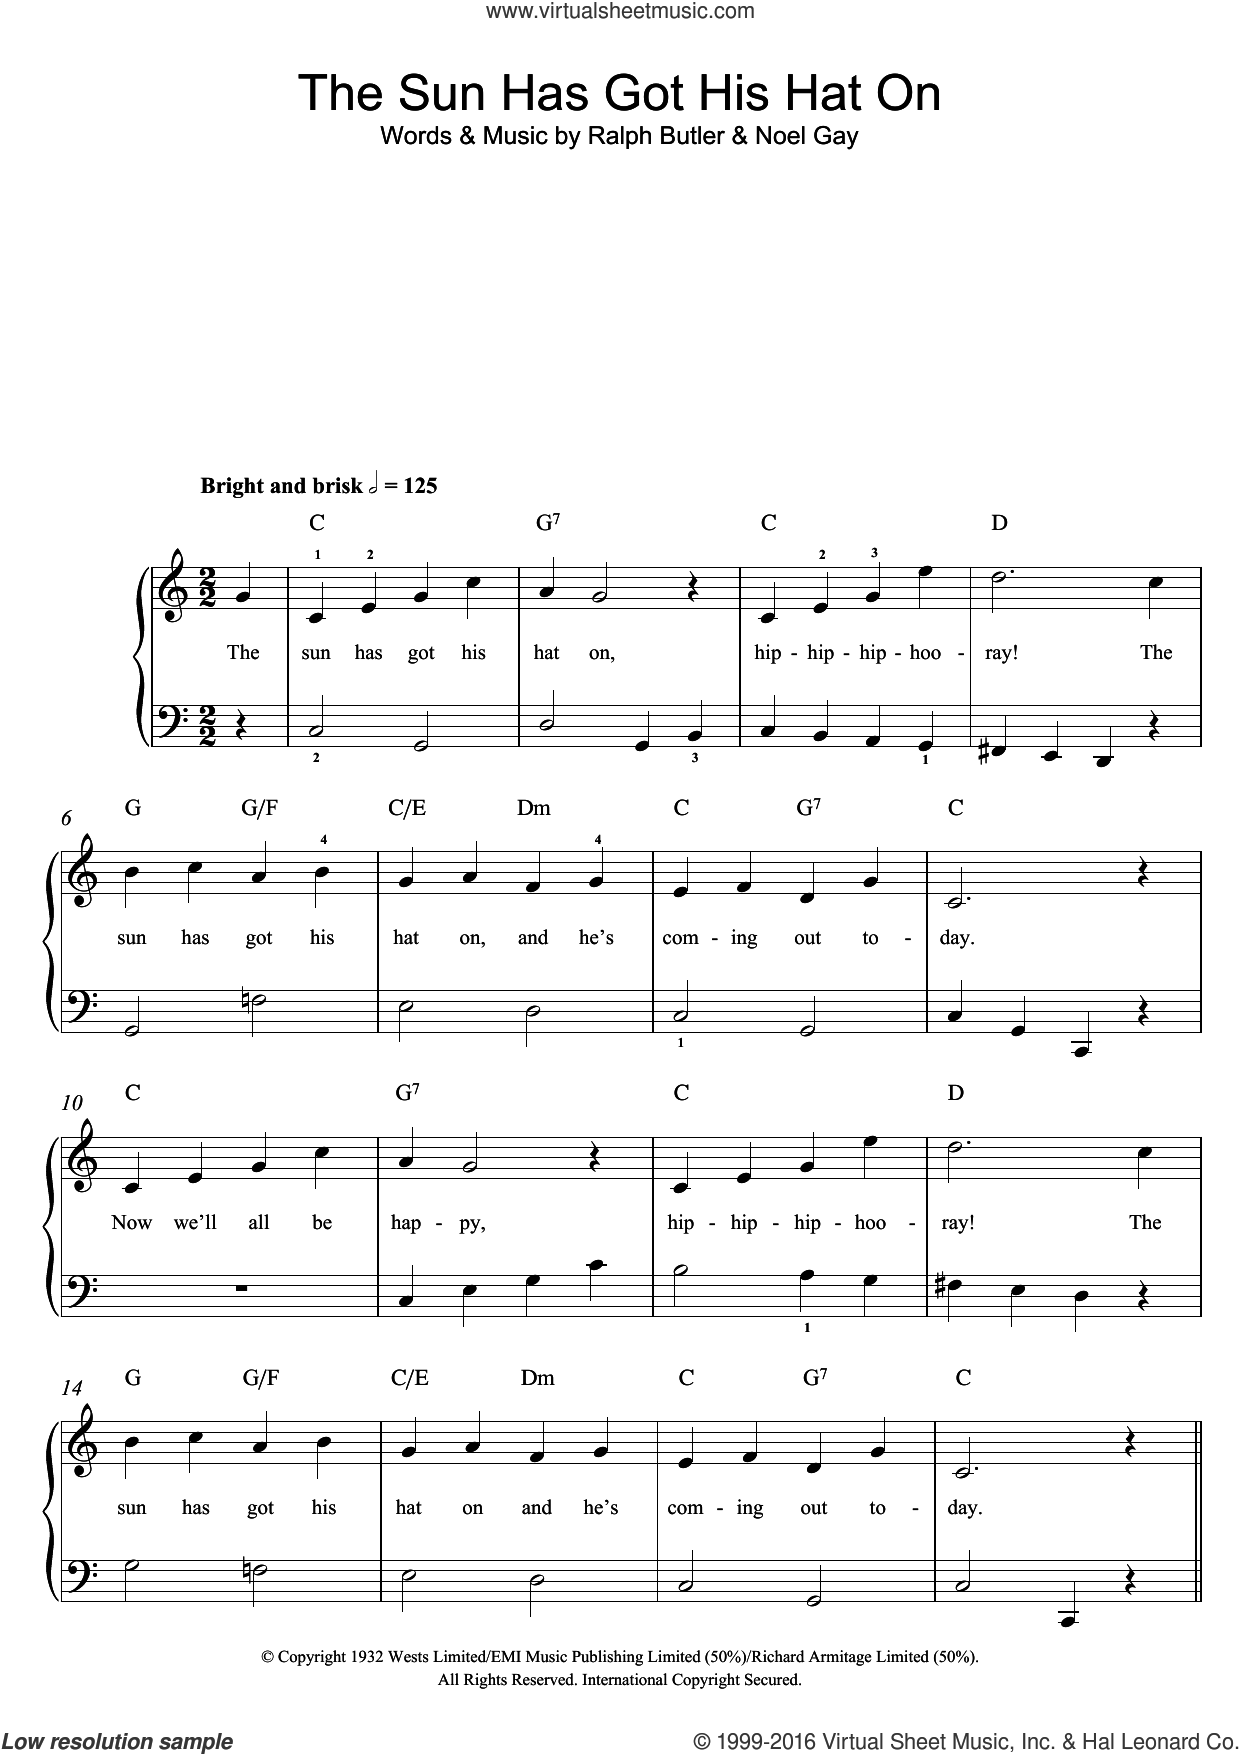 The Sun Has Got His Hat On sheet music for piano solo by Noel Gay and Ralph Butler, easy skill level